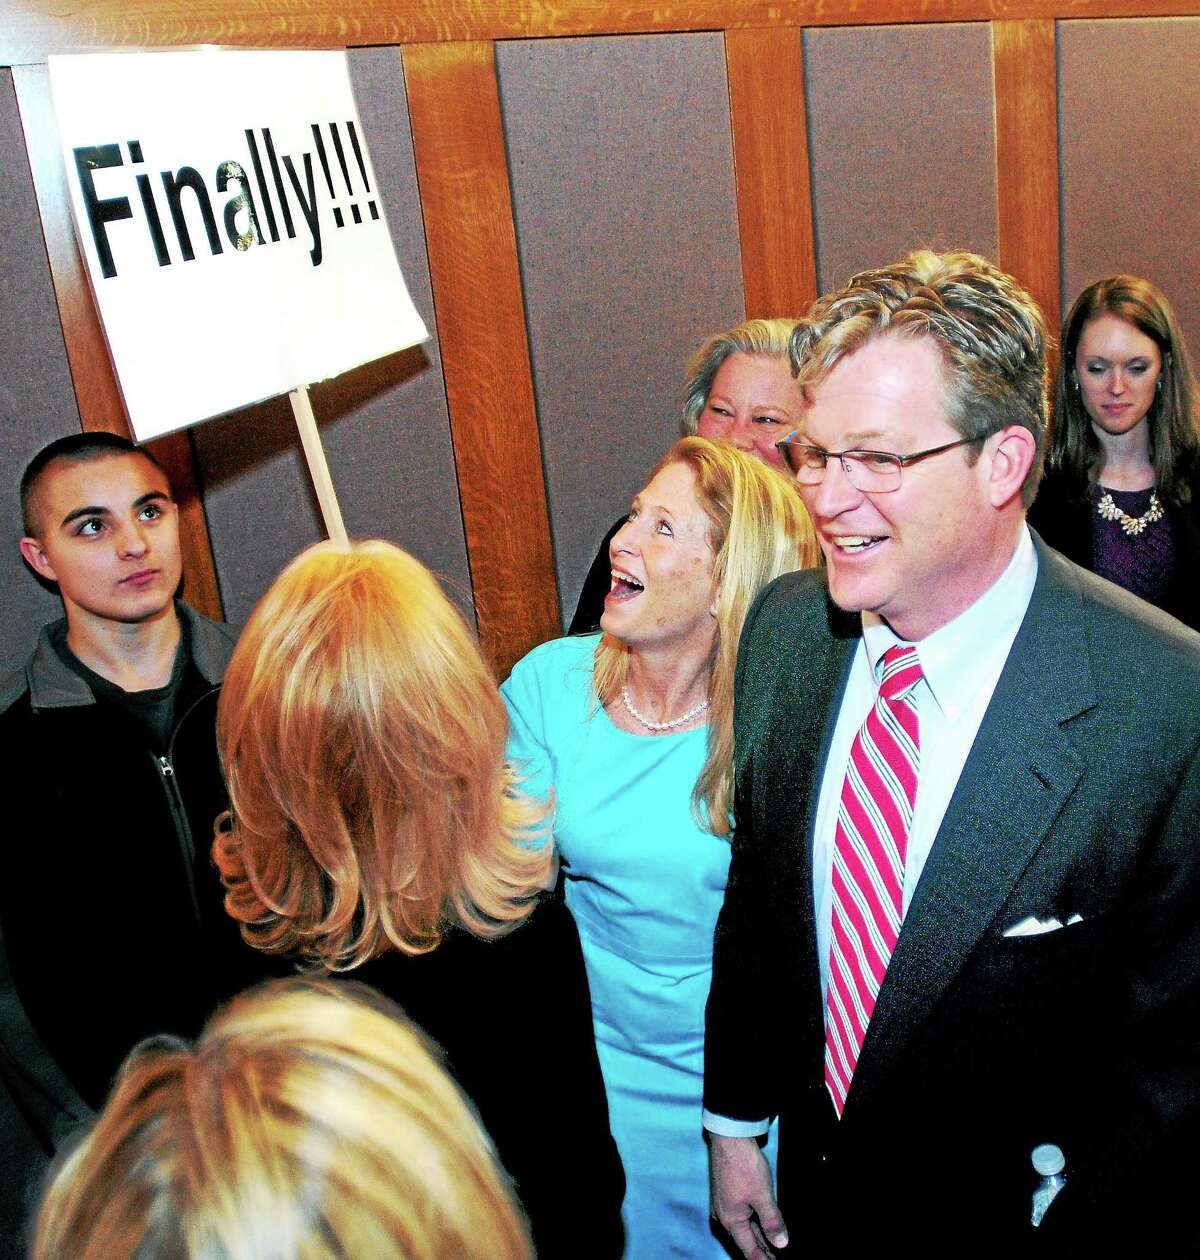 """Ted Kennedy Jr., right, and his wife, Kiki, center, share a laugh with their neighbor who made a """"Finally!!!"""" sign for his announcement to run for a state Senate seat at the Blackstone Memorial Library in Branford in April."""